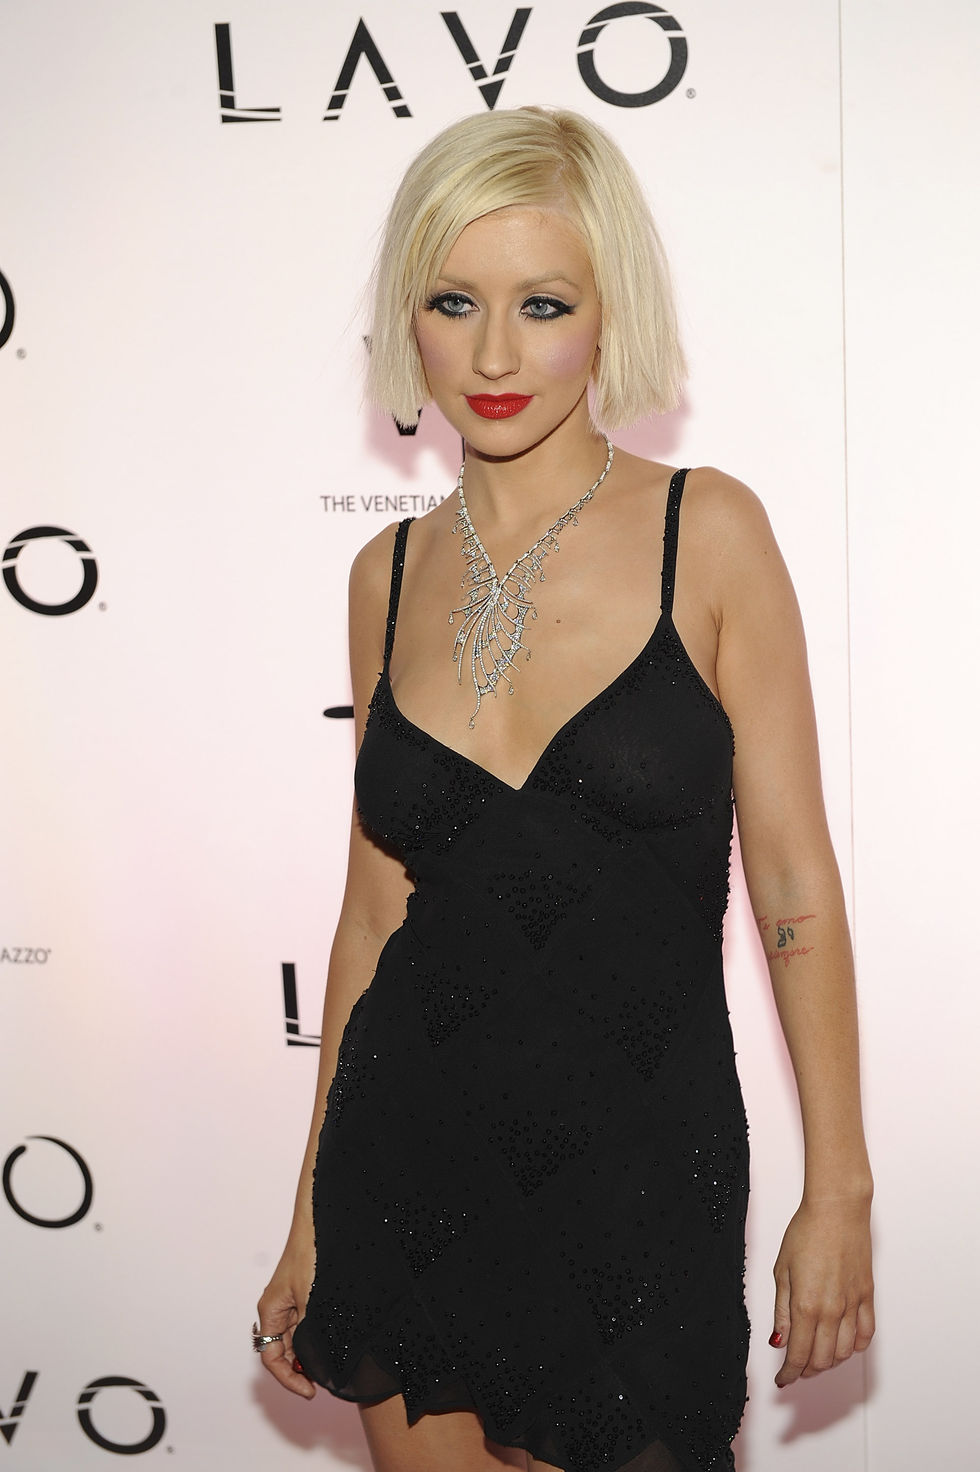 christina-aguilera-hosts-new-years-eve-at-tao-in-las-vegas-01